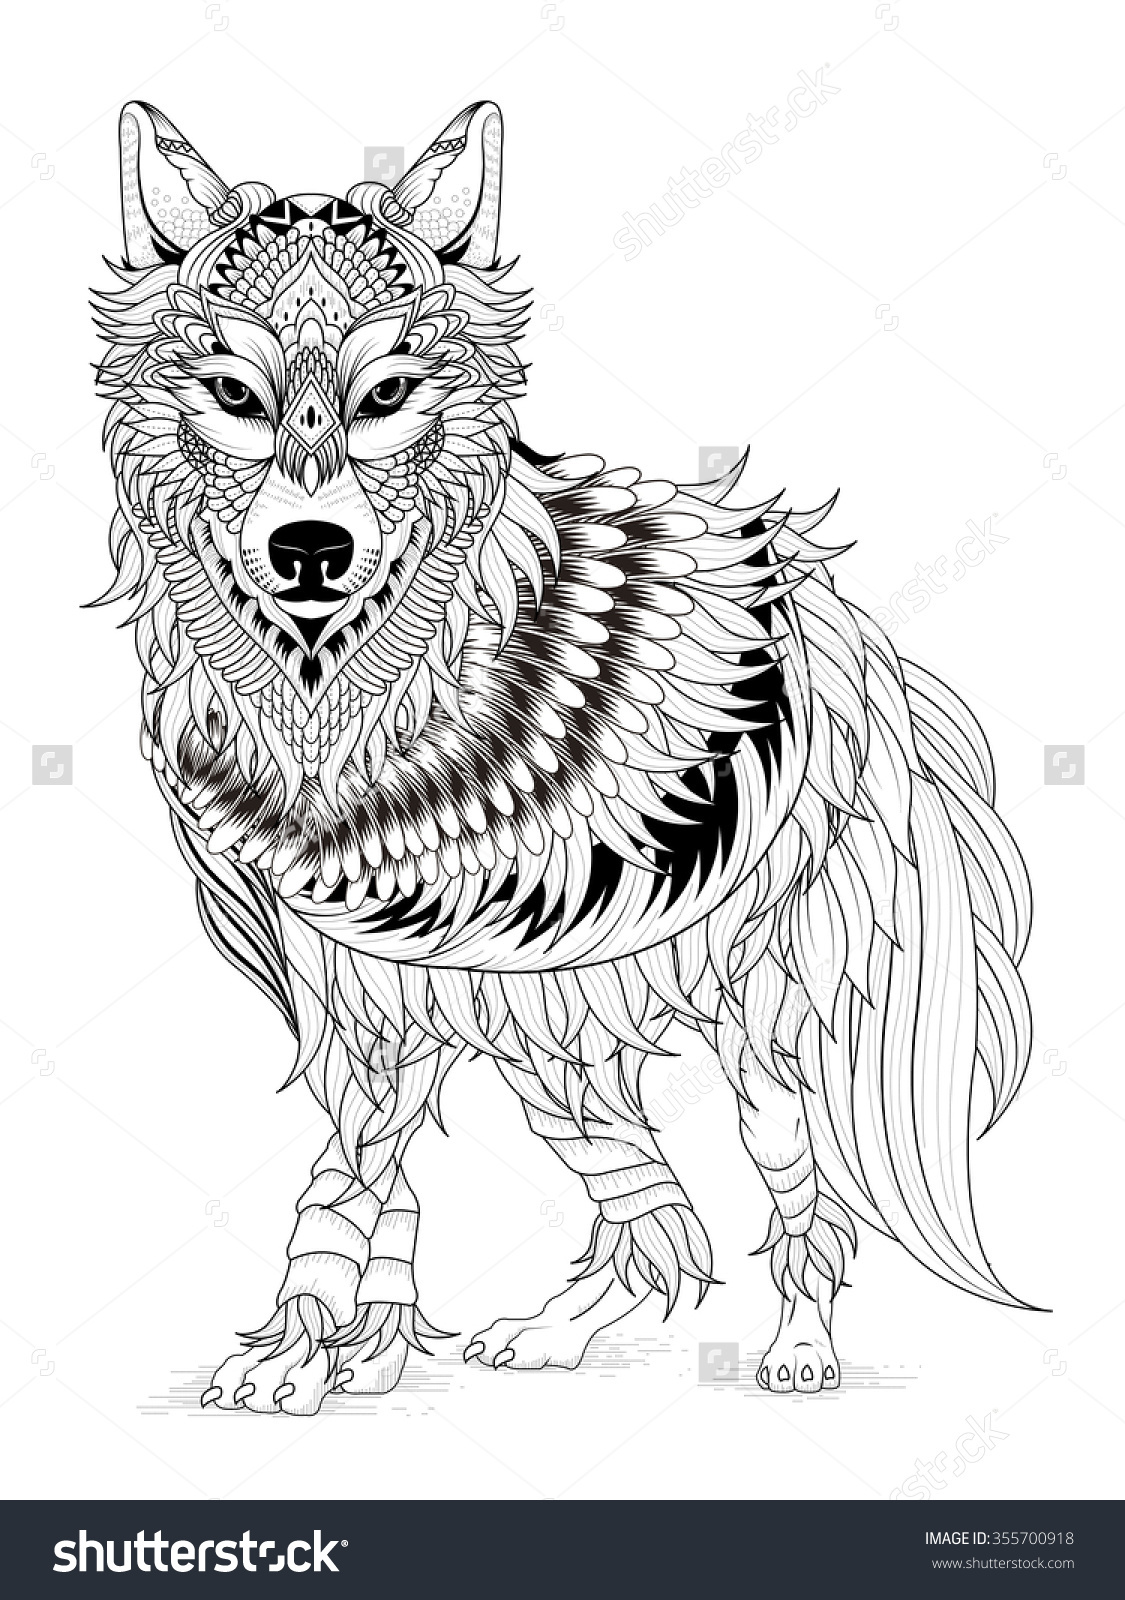 Coloring Pages Free Printable Wolf Coloring Pages wolf coloring pages futpal com page free printable for kids 3783